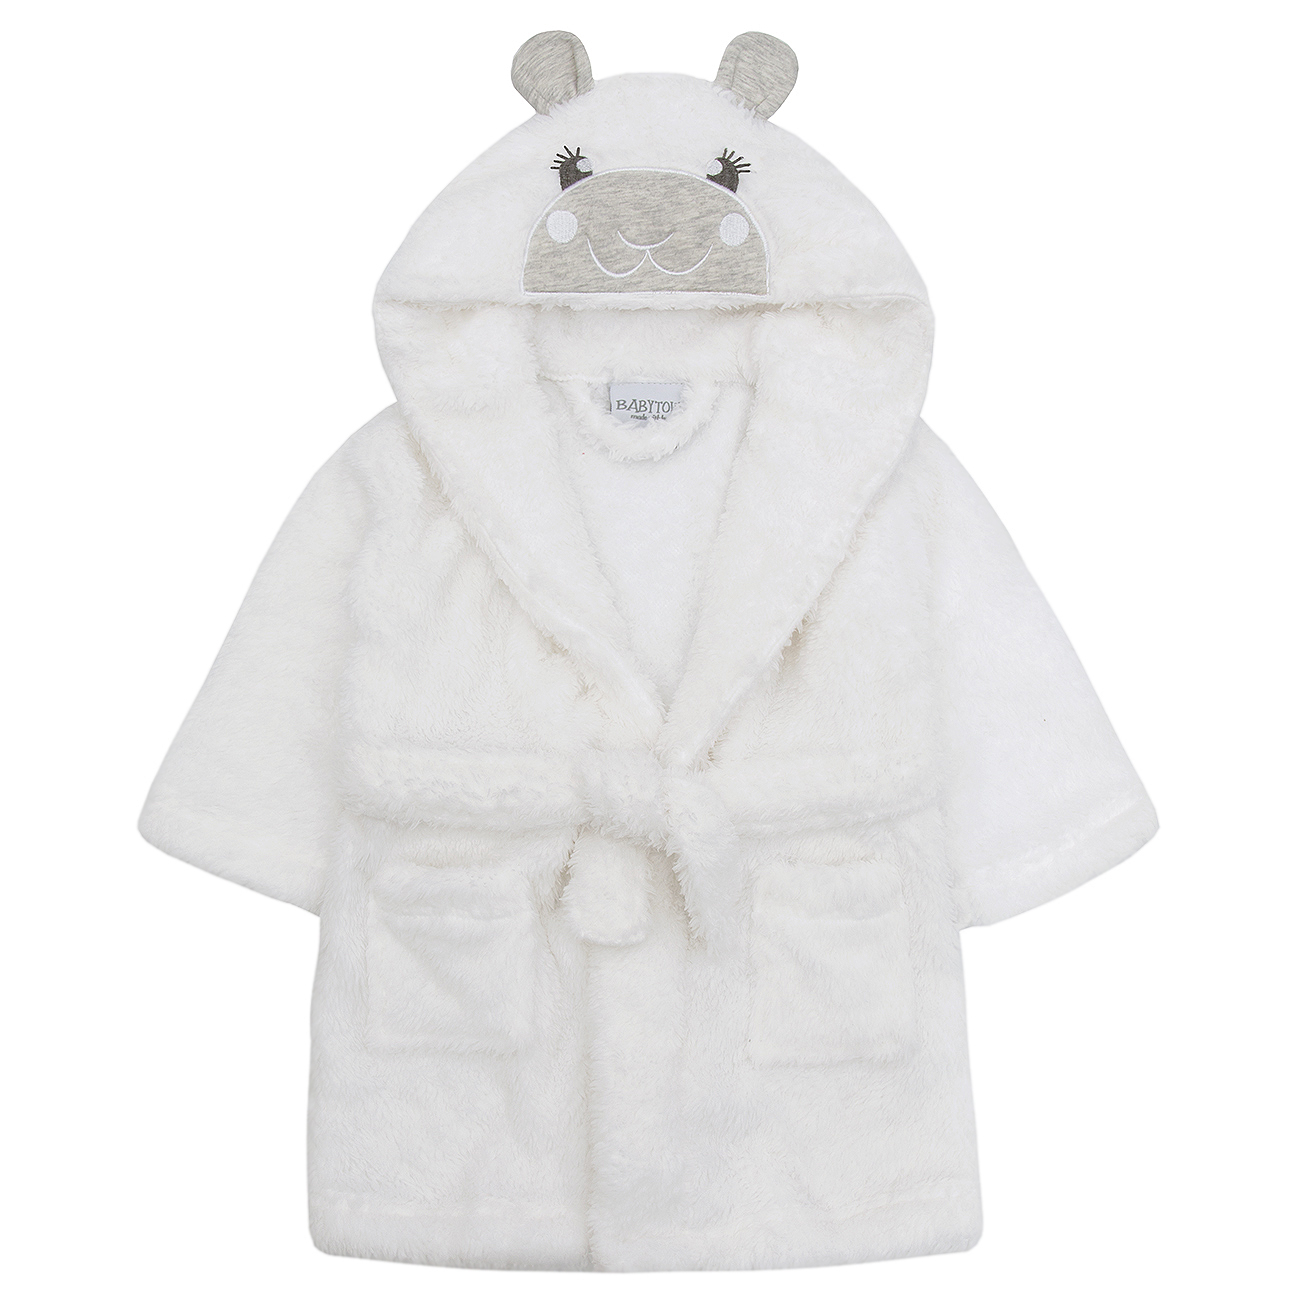 bd014f0817a30 Baby Boys Girls Snuggle Lamb Dressing Robe Fleece Hooded Unisex Gown  Novelty New